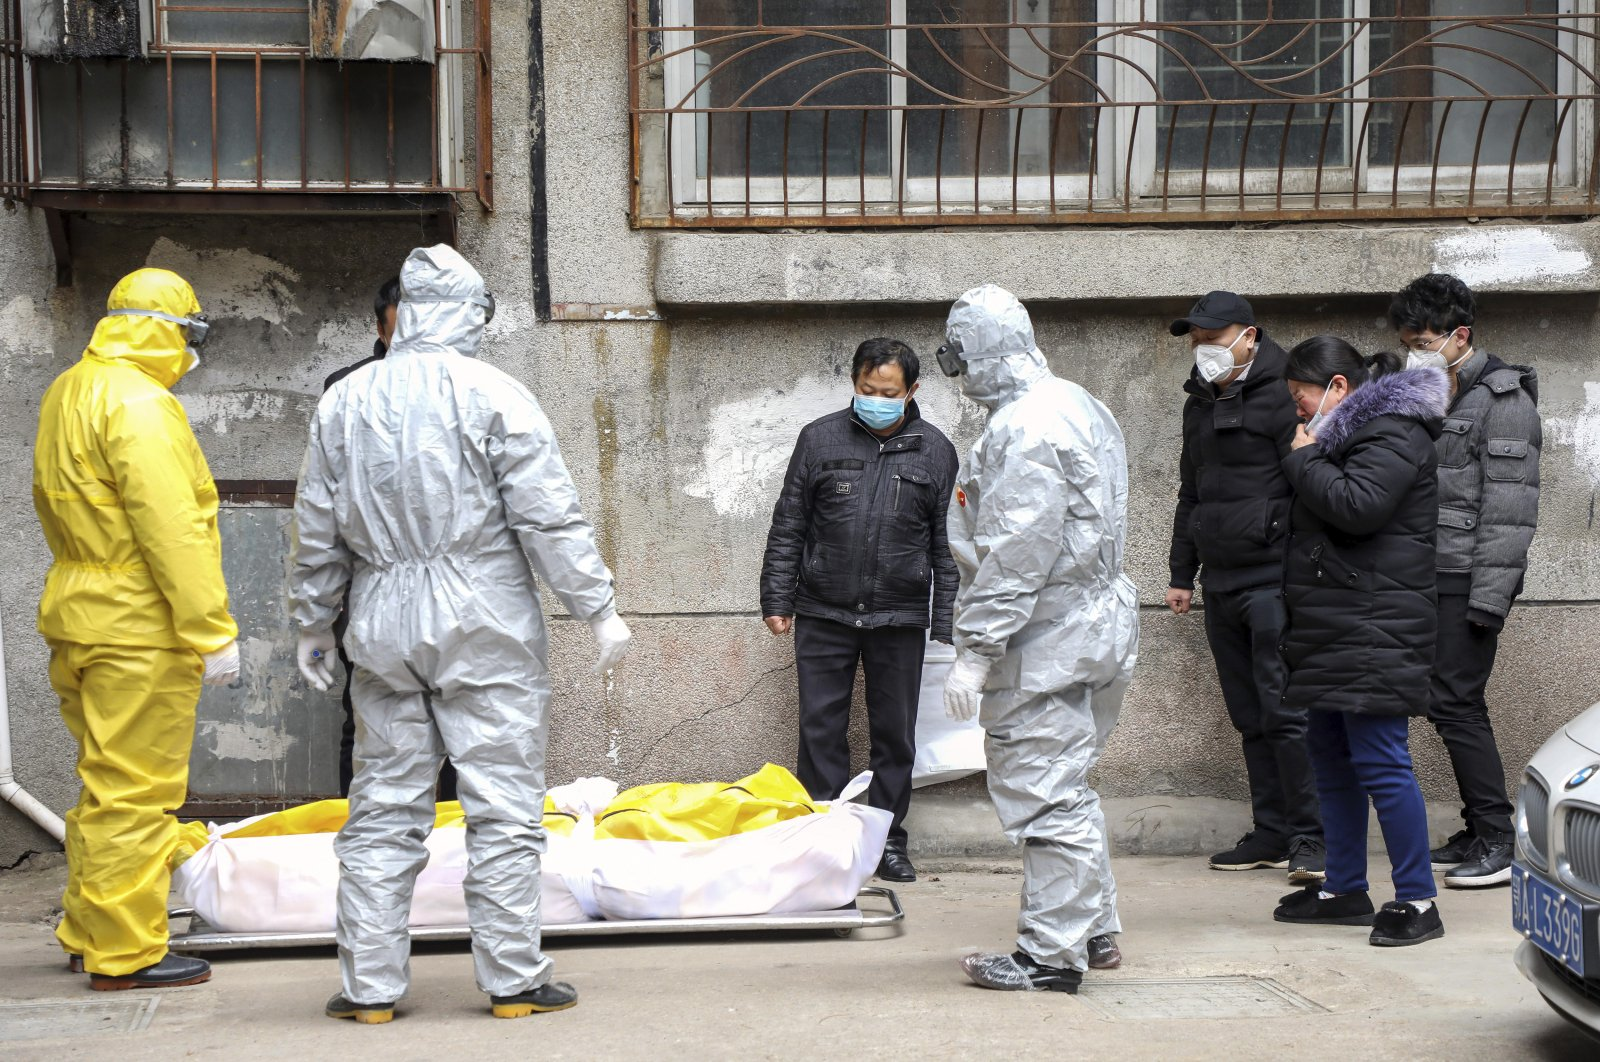 Funeral home workers remove the body of a person suspected to have died during the coronavirus outbreak from a residential building in Wuhan in central China's Hubei Province, Feb. 1, 2020. (Chinatopix via AP)